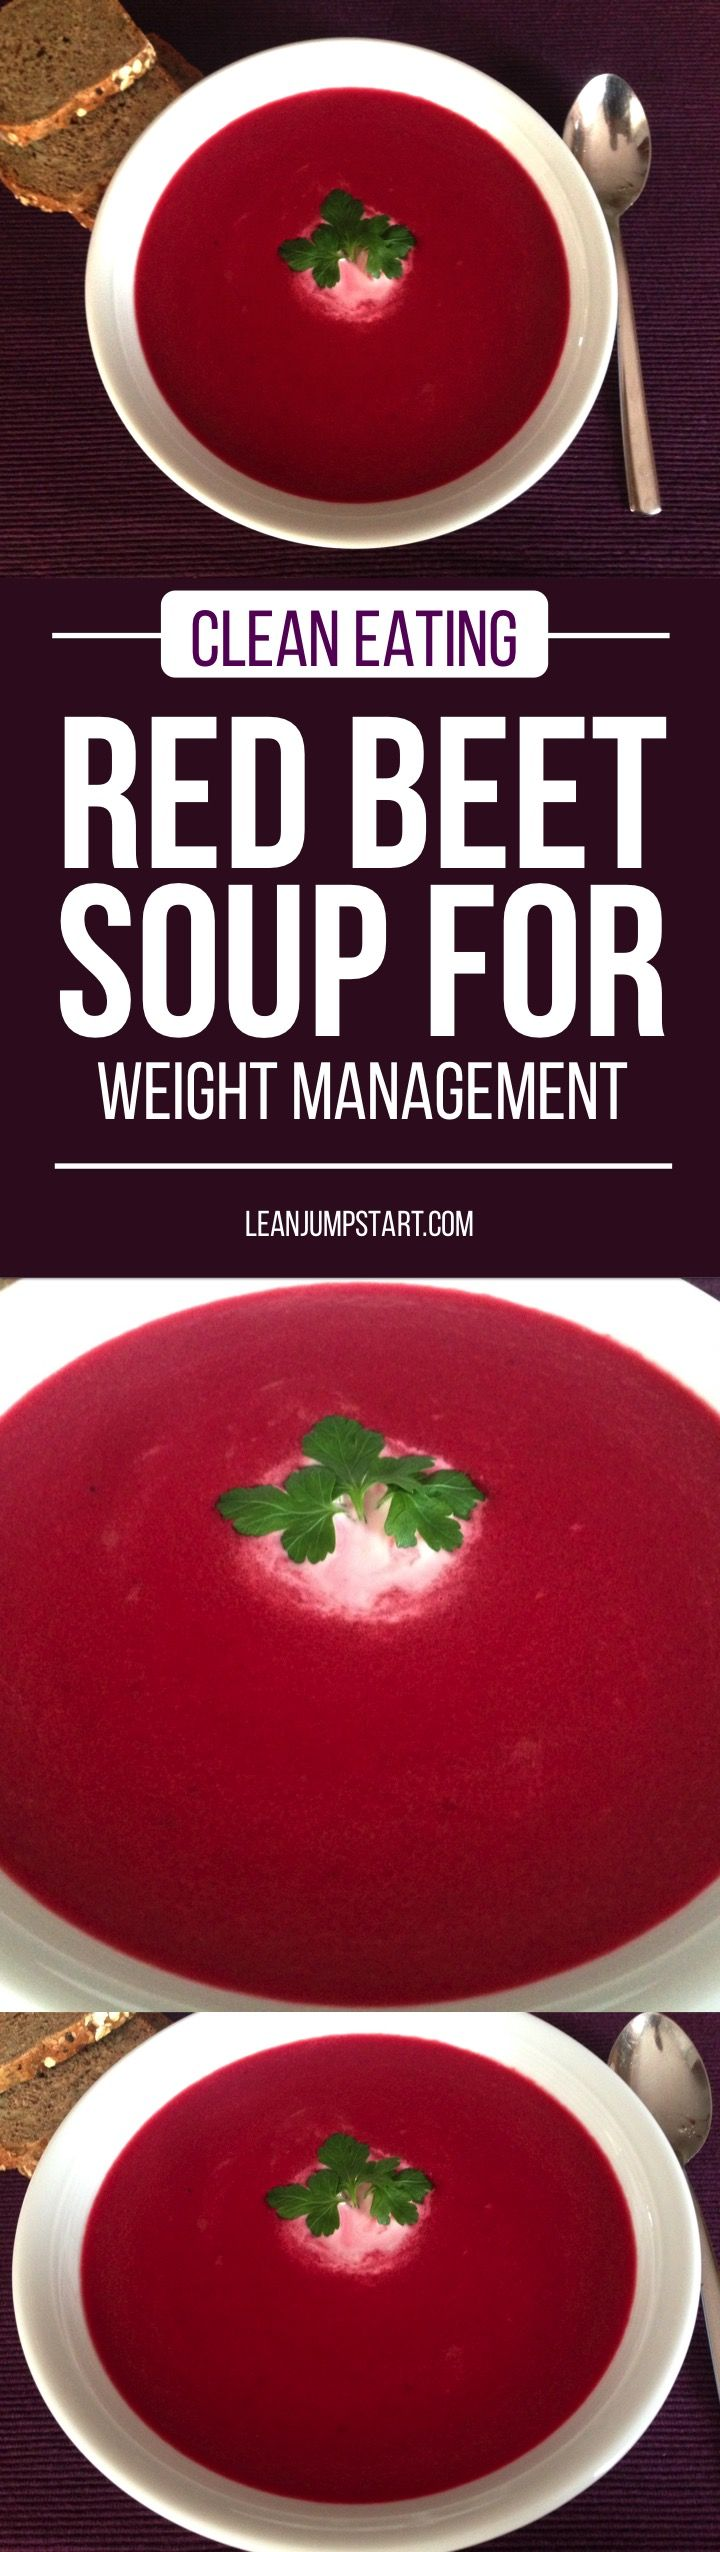 """Beetroot soup recipe: detox for body & soul + how to """"beet"""" high blood pressure #beets #redbeets via @leanjumpstart"""